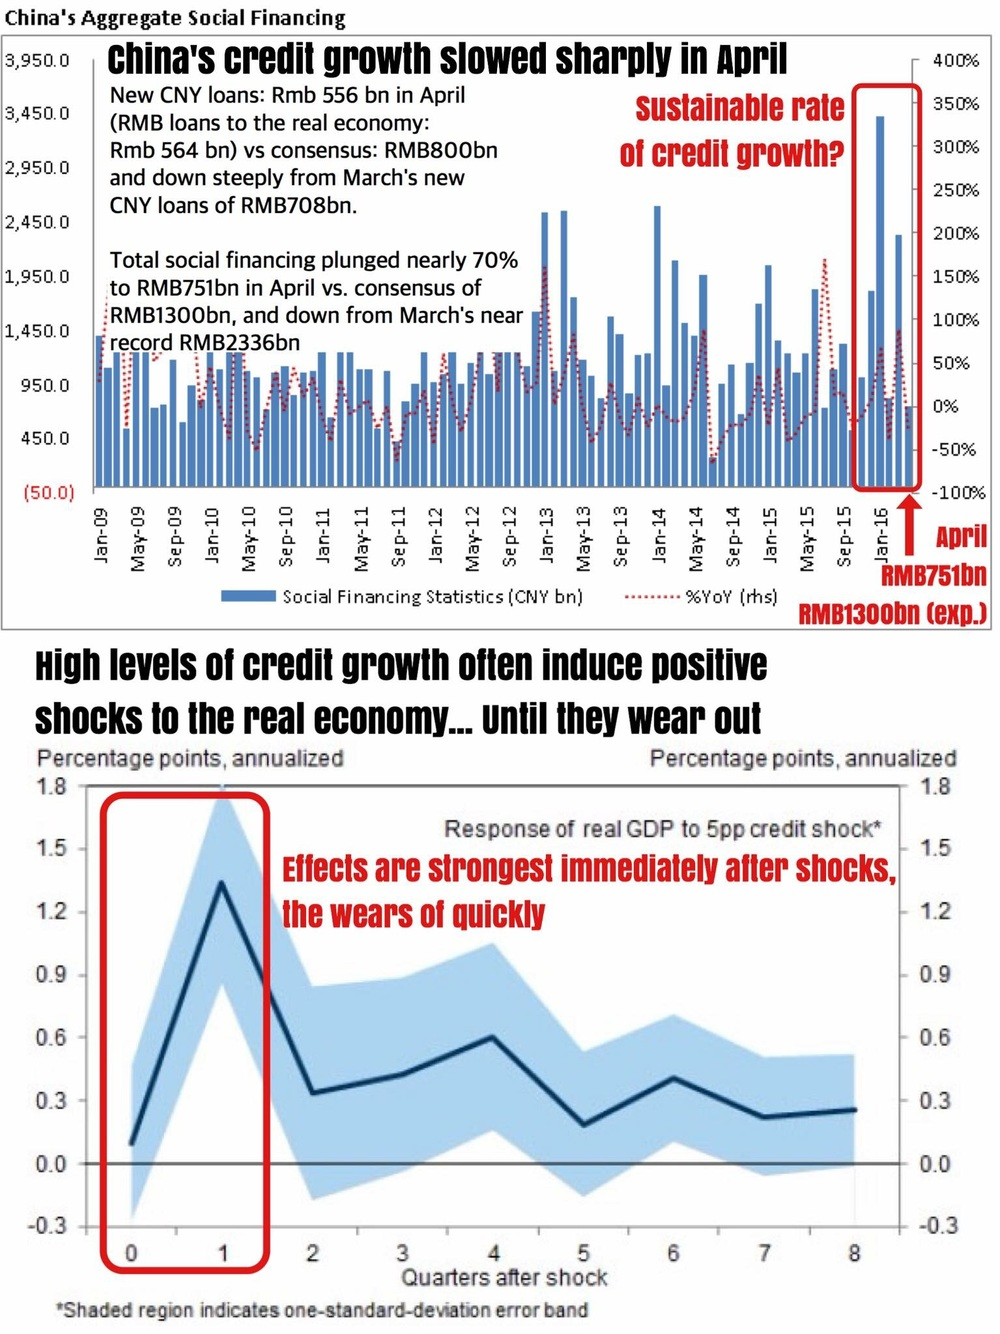 """China's credit growth (new CNY loans & social financing) slowed very sharply in April from March's blistering increase. Why does this matter more than anything else? Because if you even bothered to look at why the world's second largest economy has been able to ""growth"" at such officially-reported (or claimed) rates, it's been mostly due to the breakneck speed of which credit has been expanding. Credit fueled growth, that's what it is.    Earlier Friday, China reported that total social financing (TSF) for April fell 70% from March, coming in at RMB751bn (still very high) vs. consensus expectations of RMB1.3trn. New CNY loan creation also slowed sharply in April to RMB556bn vs. consensus expectations of RMB809bn.    To place things in context of how insanely volatile the credit growth situation in China really is, January saw TSF increase by a whopping 63% YoY. April saw TSF fall by more than 15%. That's a delta of nearly 80% in 3 months. Go figure.    Also, M2 growth slowed in April and money velocity fell, indicating that consumption has probably also fell.    Watch this key metric each month because we strongly believe it's what holds the Chinese economy together. Should we see consistent drops in credit growth, you know almost certainly that the world's second largest economy and largest producer of exports is in deep water.    From Goldman:    ""Slower credit growth in April was likely the partial result of tighter liquidity conditions in the interbank market. Administrative controls might have played some role as well. Higher yields and credit spread may also contributed given the decrease in corporate bond net issuance under TSF. There were also some crowding out effects of very large amount of local government bond issuance which were mostly bought by banks.    Fiscal deposit change was a major drag on M2 growth. Fiscal revenue growth was as high as 14.4%, mainly because of attempts by the government to collect the last month's operation tax before they are abolished and changed to VAT. Fiscal expenditure growth slowed after very strong growth in March, which was impossible to maintain. FX flows were likely relatively stable with no major outflow nor inflows.    April money and credit data indicate that tweaking of the policy stance likely started in April, before the late April Politburo meeting and early May People's Daily editorial suggesting less stimulative policies. Such a change is unsurprising given the rebound in activity growth,rising concerns about inflation and leverage. To what extent the latest policy comments will have additional impact on policy in May and beyond is uncertain, but we believe 2Q policy as a whole is most likely to be less supportive than 1Q. Domestic investment demand growth as a result will likely receive less support.""""    Business Of Finance on Facebook, 13 May 2016"